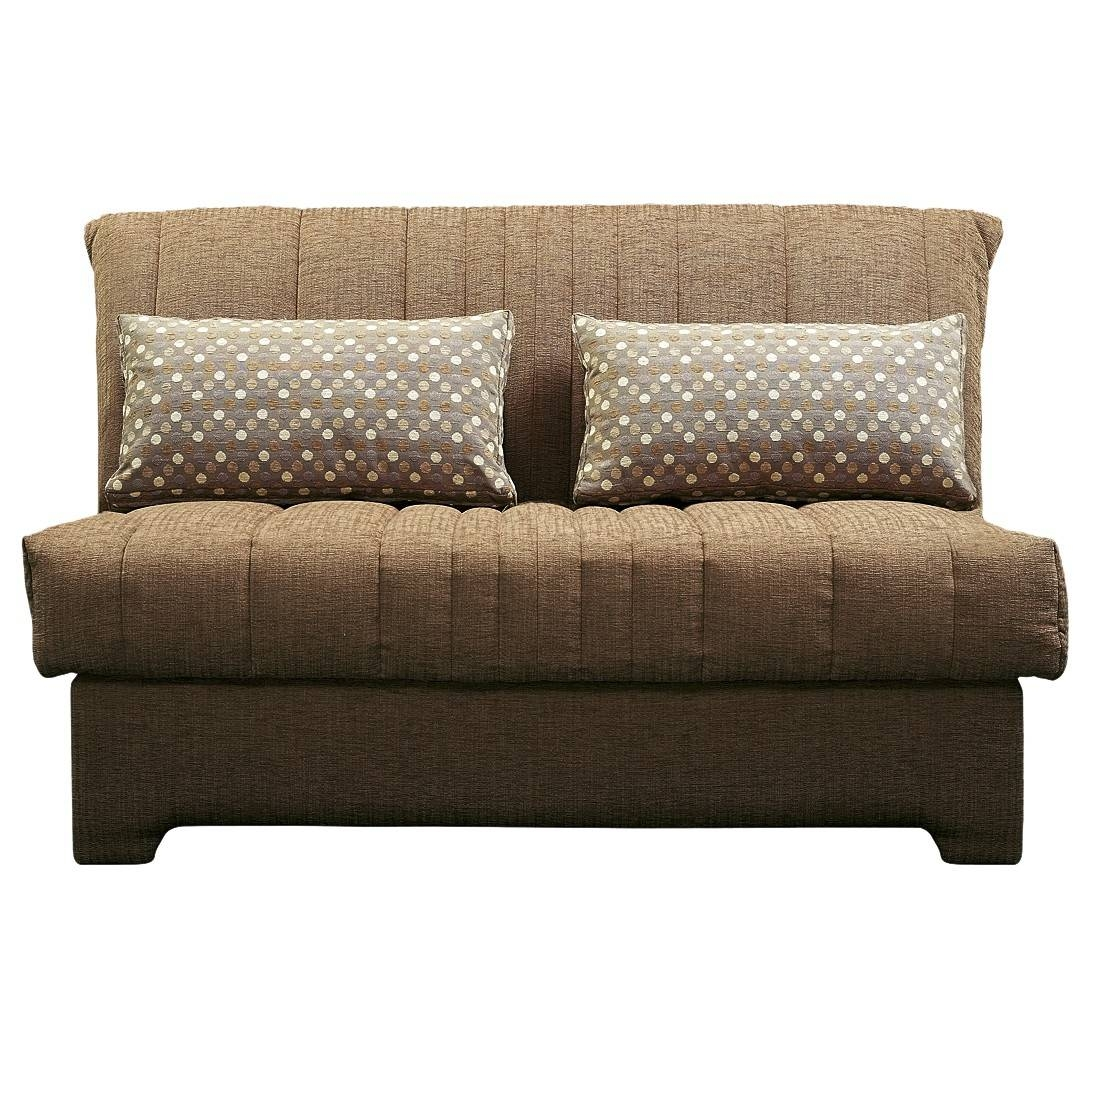 Sofa Beds John Lewis Uk - Leather Sectional Sofa intended for Luxury Sofa Beds (Image 14 of 30)